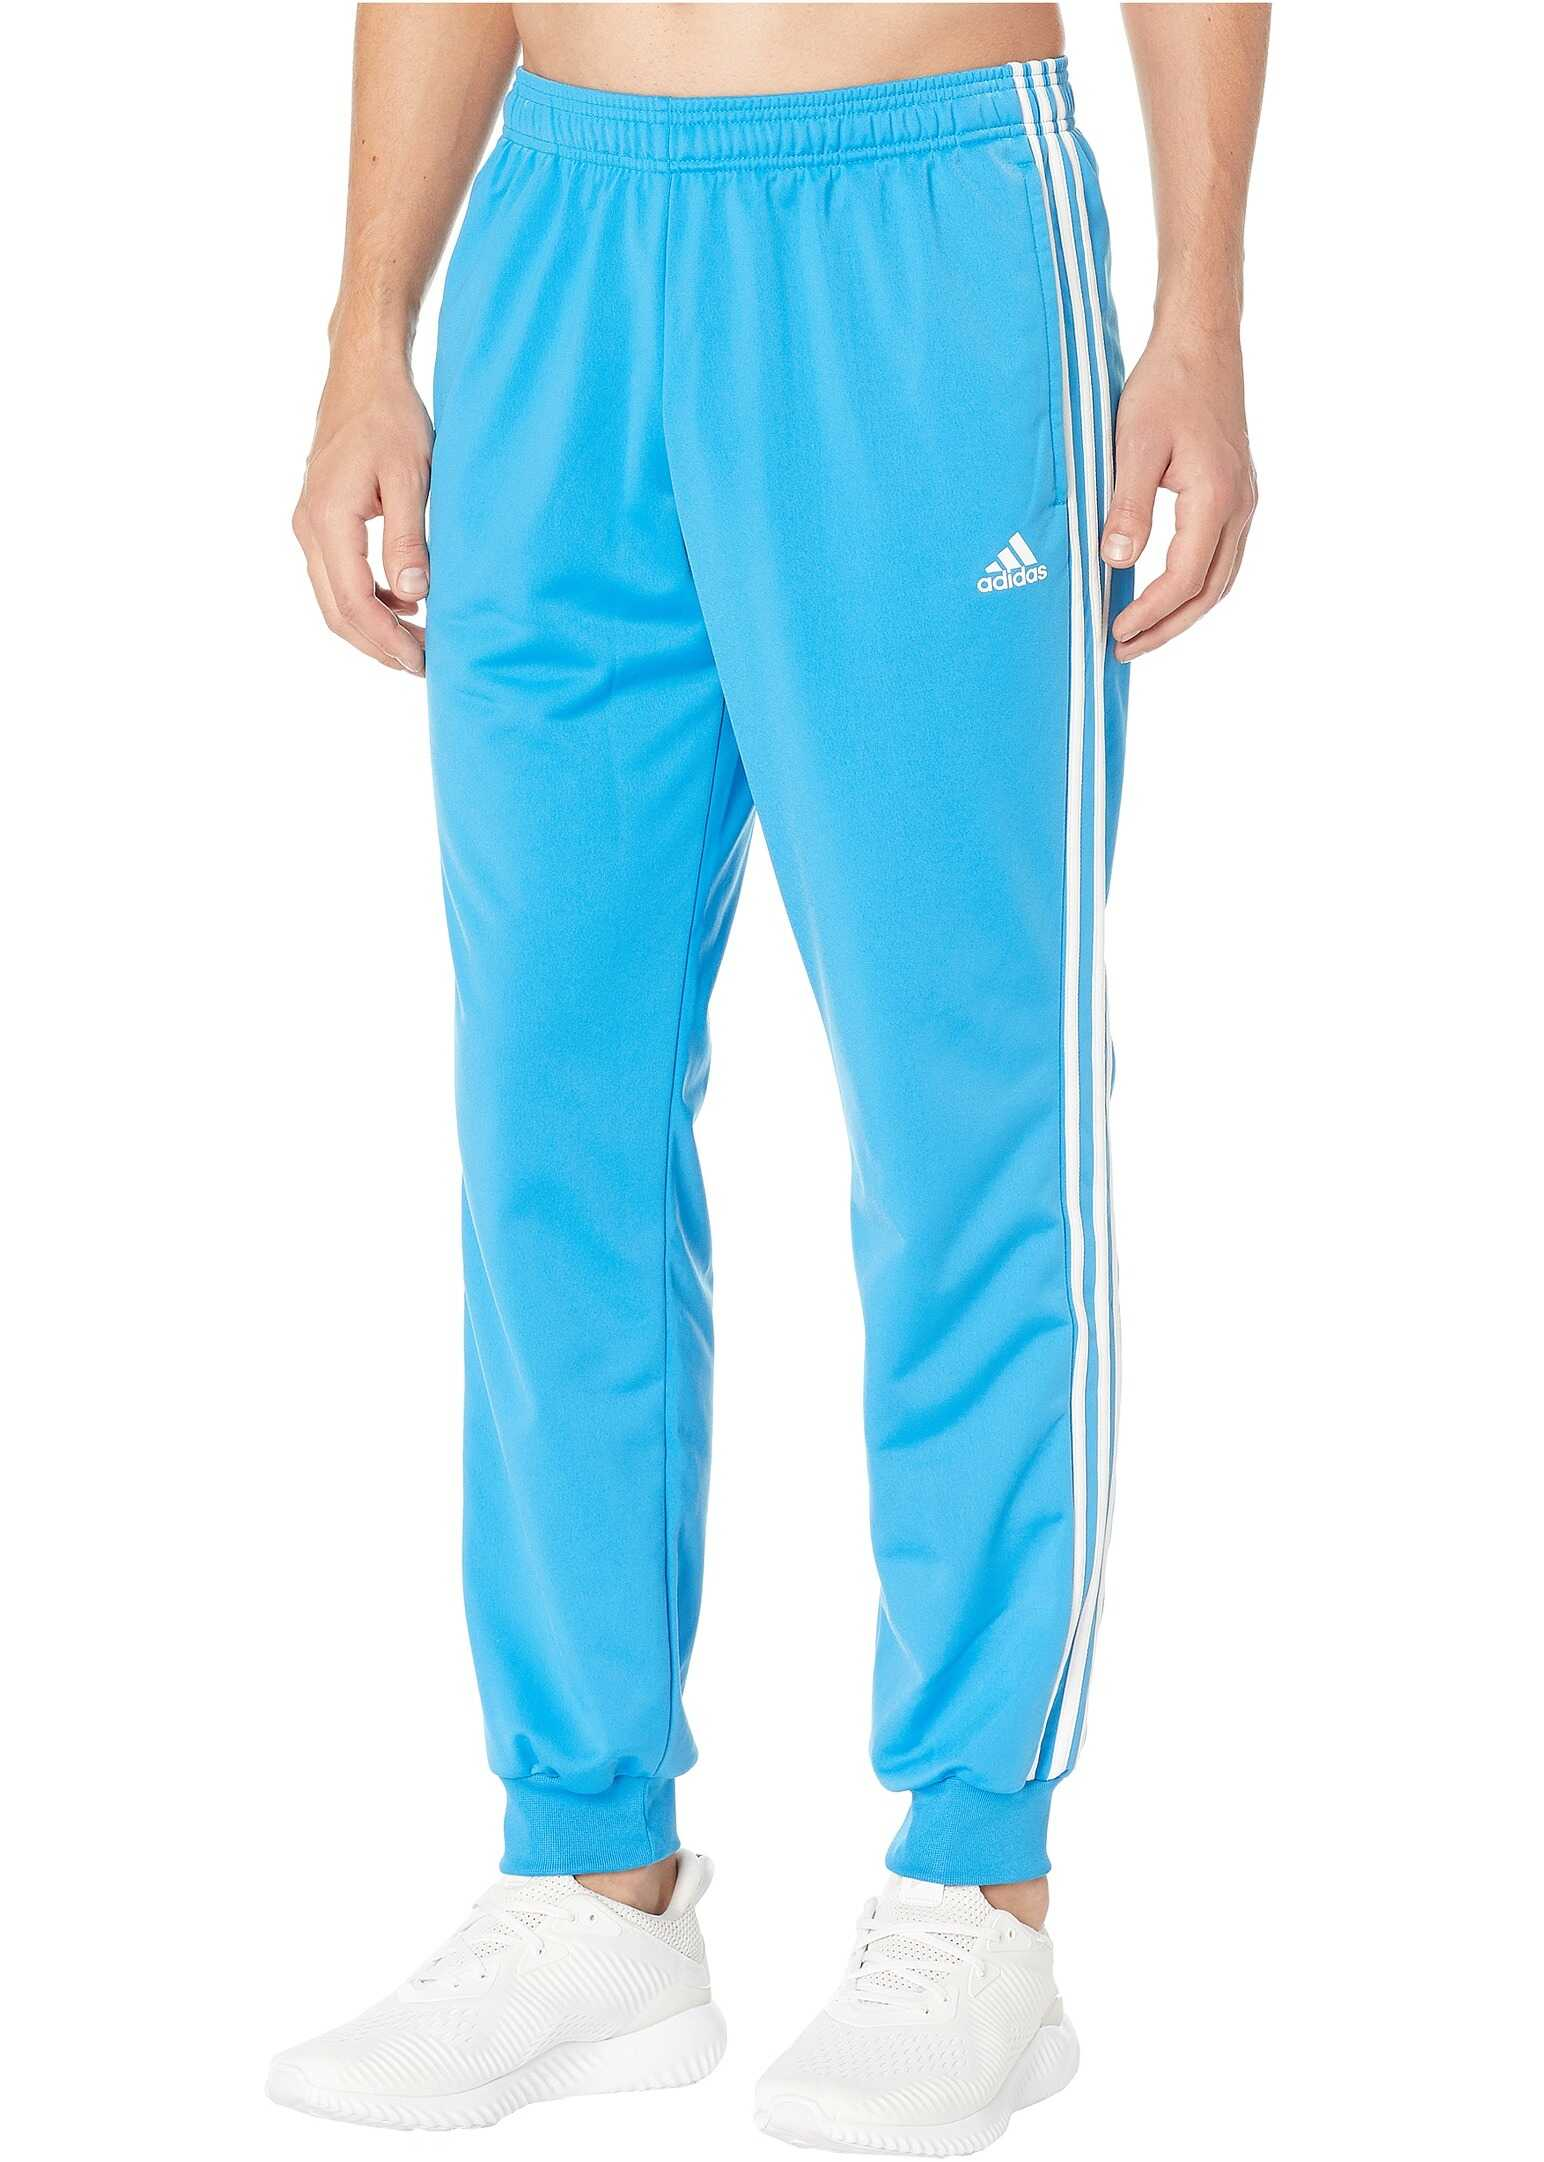 adidas Essentials 3S Tapered Tricot Pants Bright Blue/White